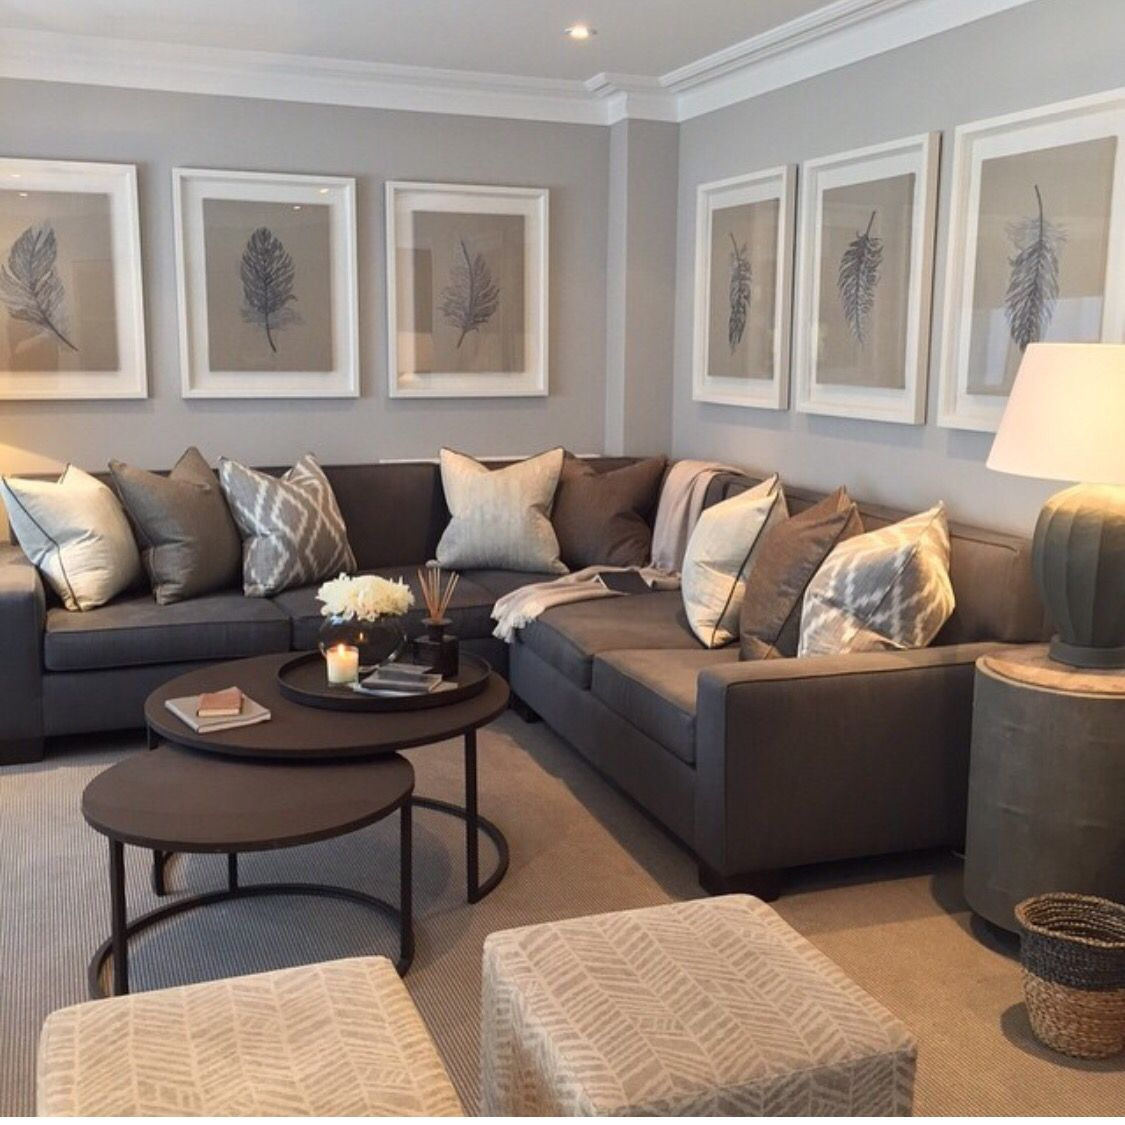 Decoratingspecial Com: Decorating With Gray And Brown